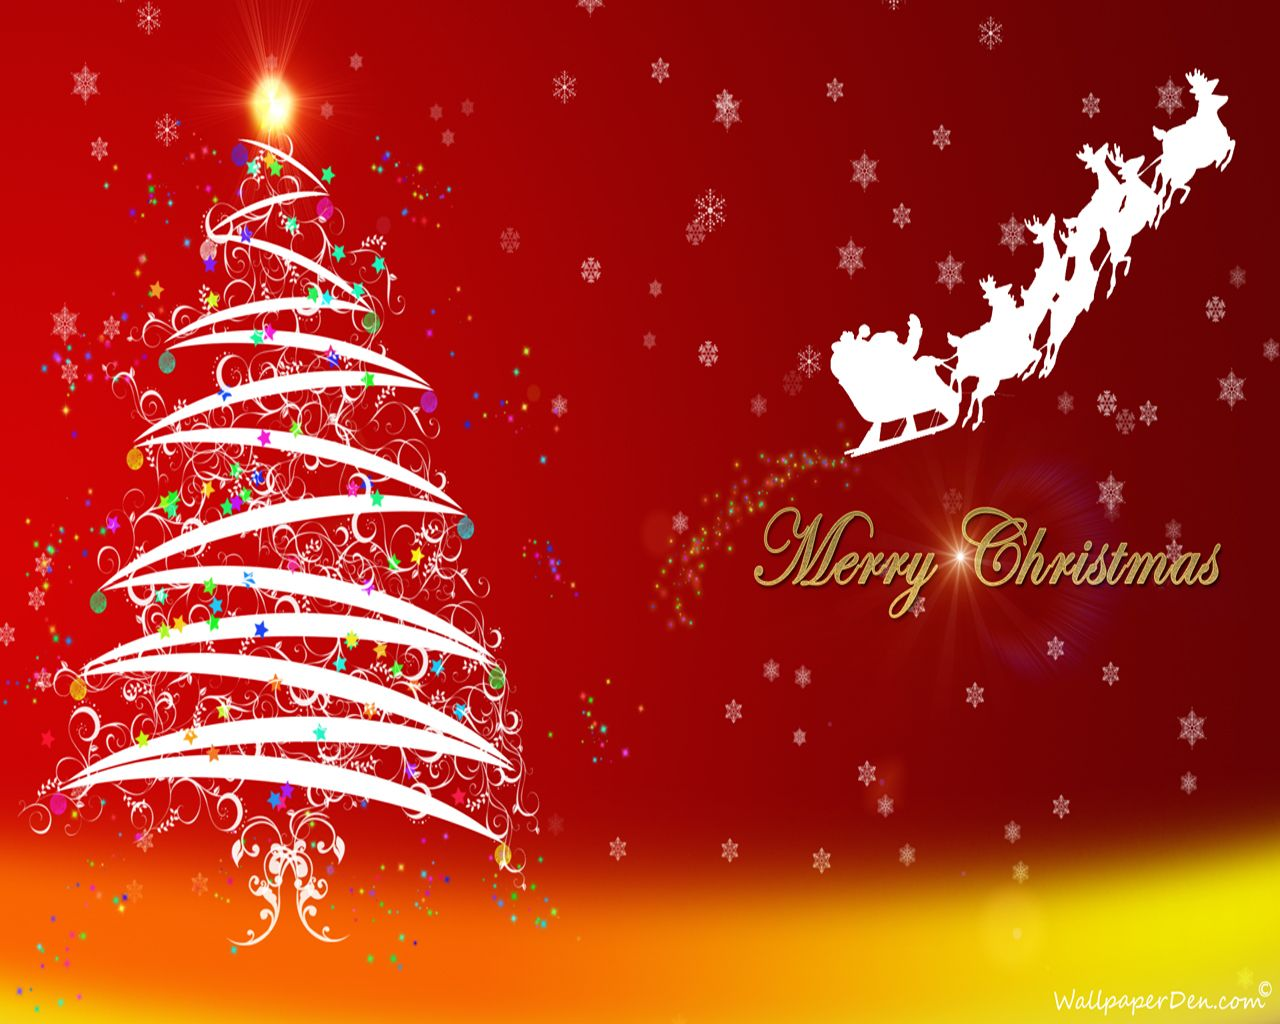 merry christmas free beautiful wallpaper download for your desktop